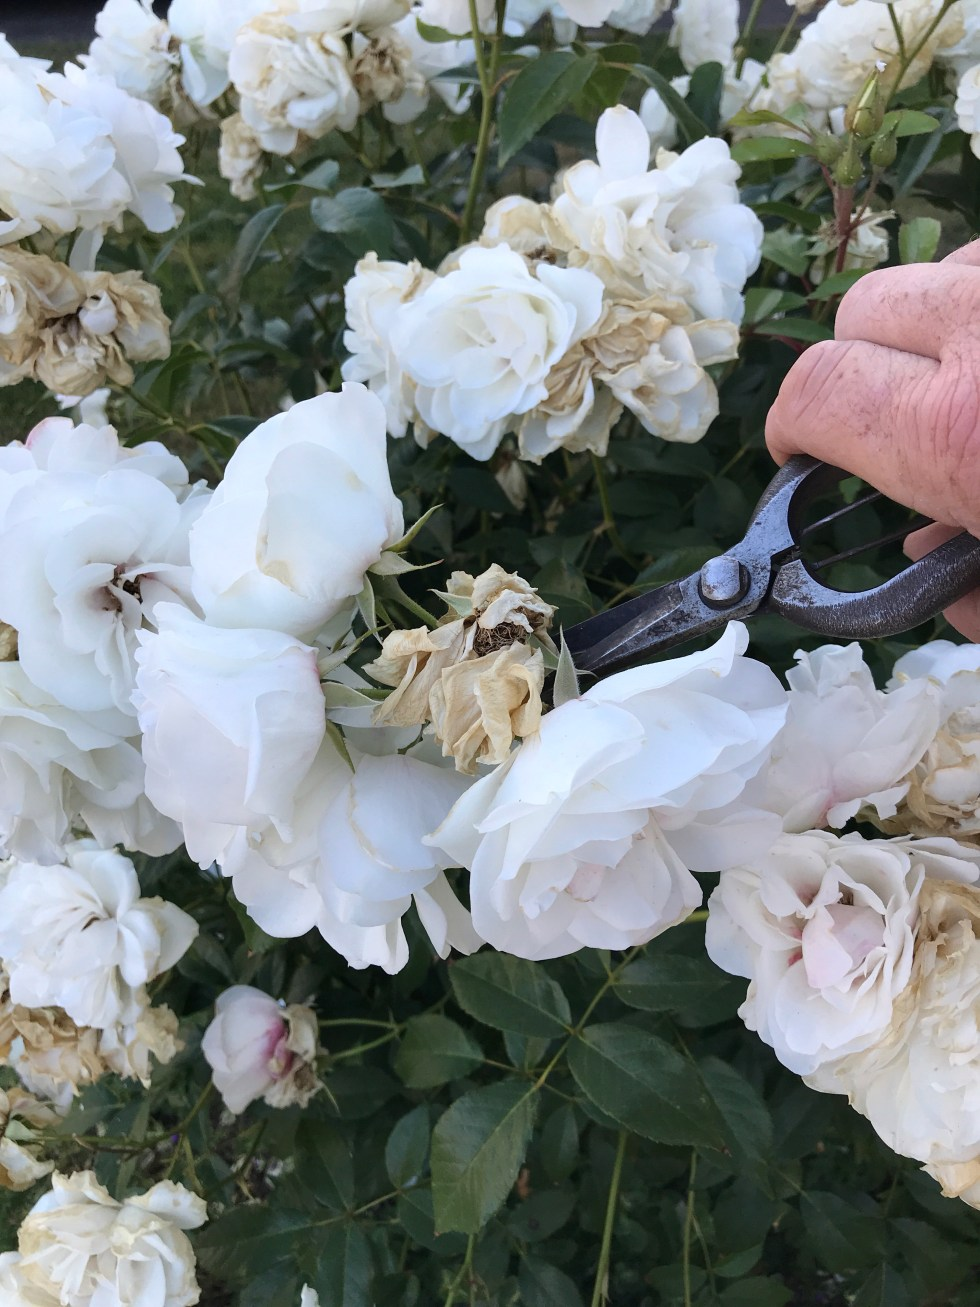 2552824e 65ca 47d5 a068 7c590287c908 9665 000006feca903af7 file Dead heading and summer pruning on roses